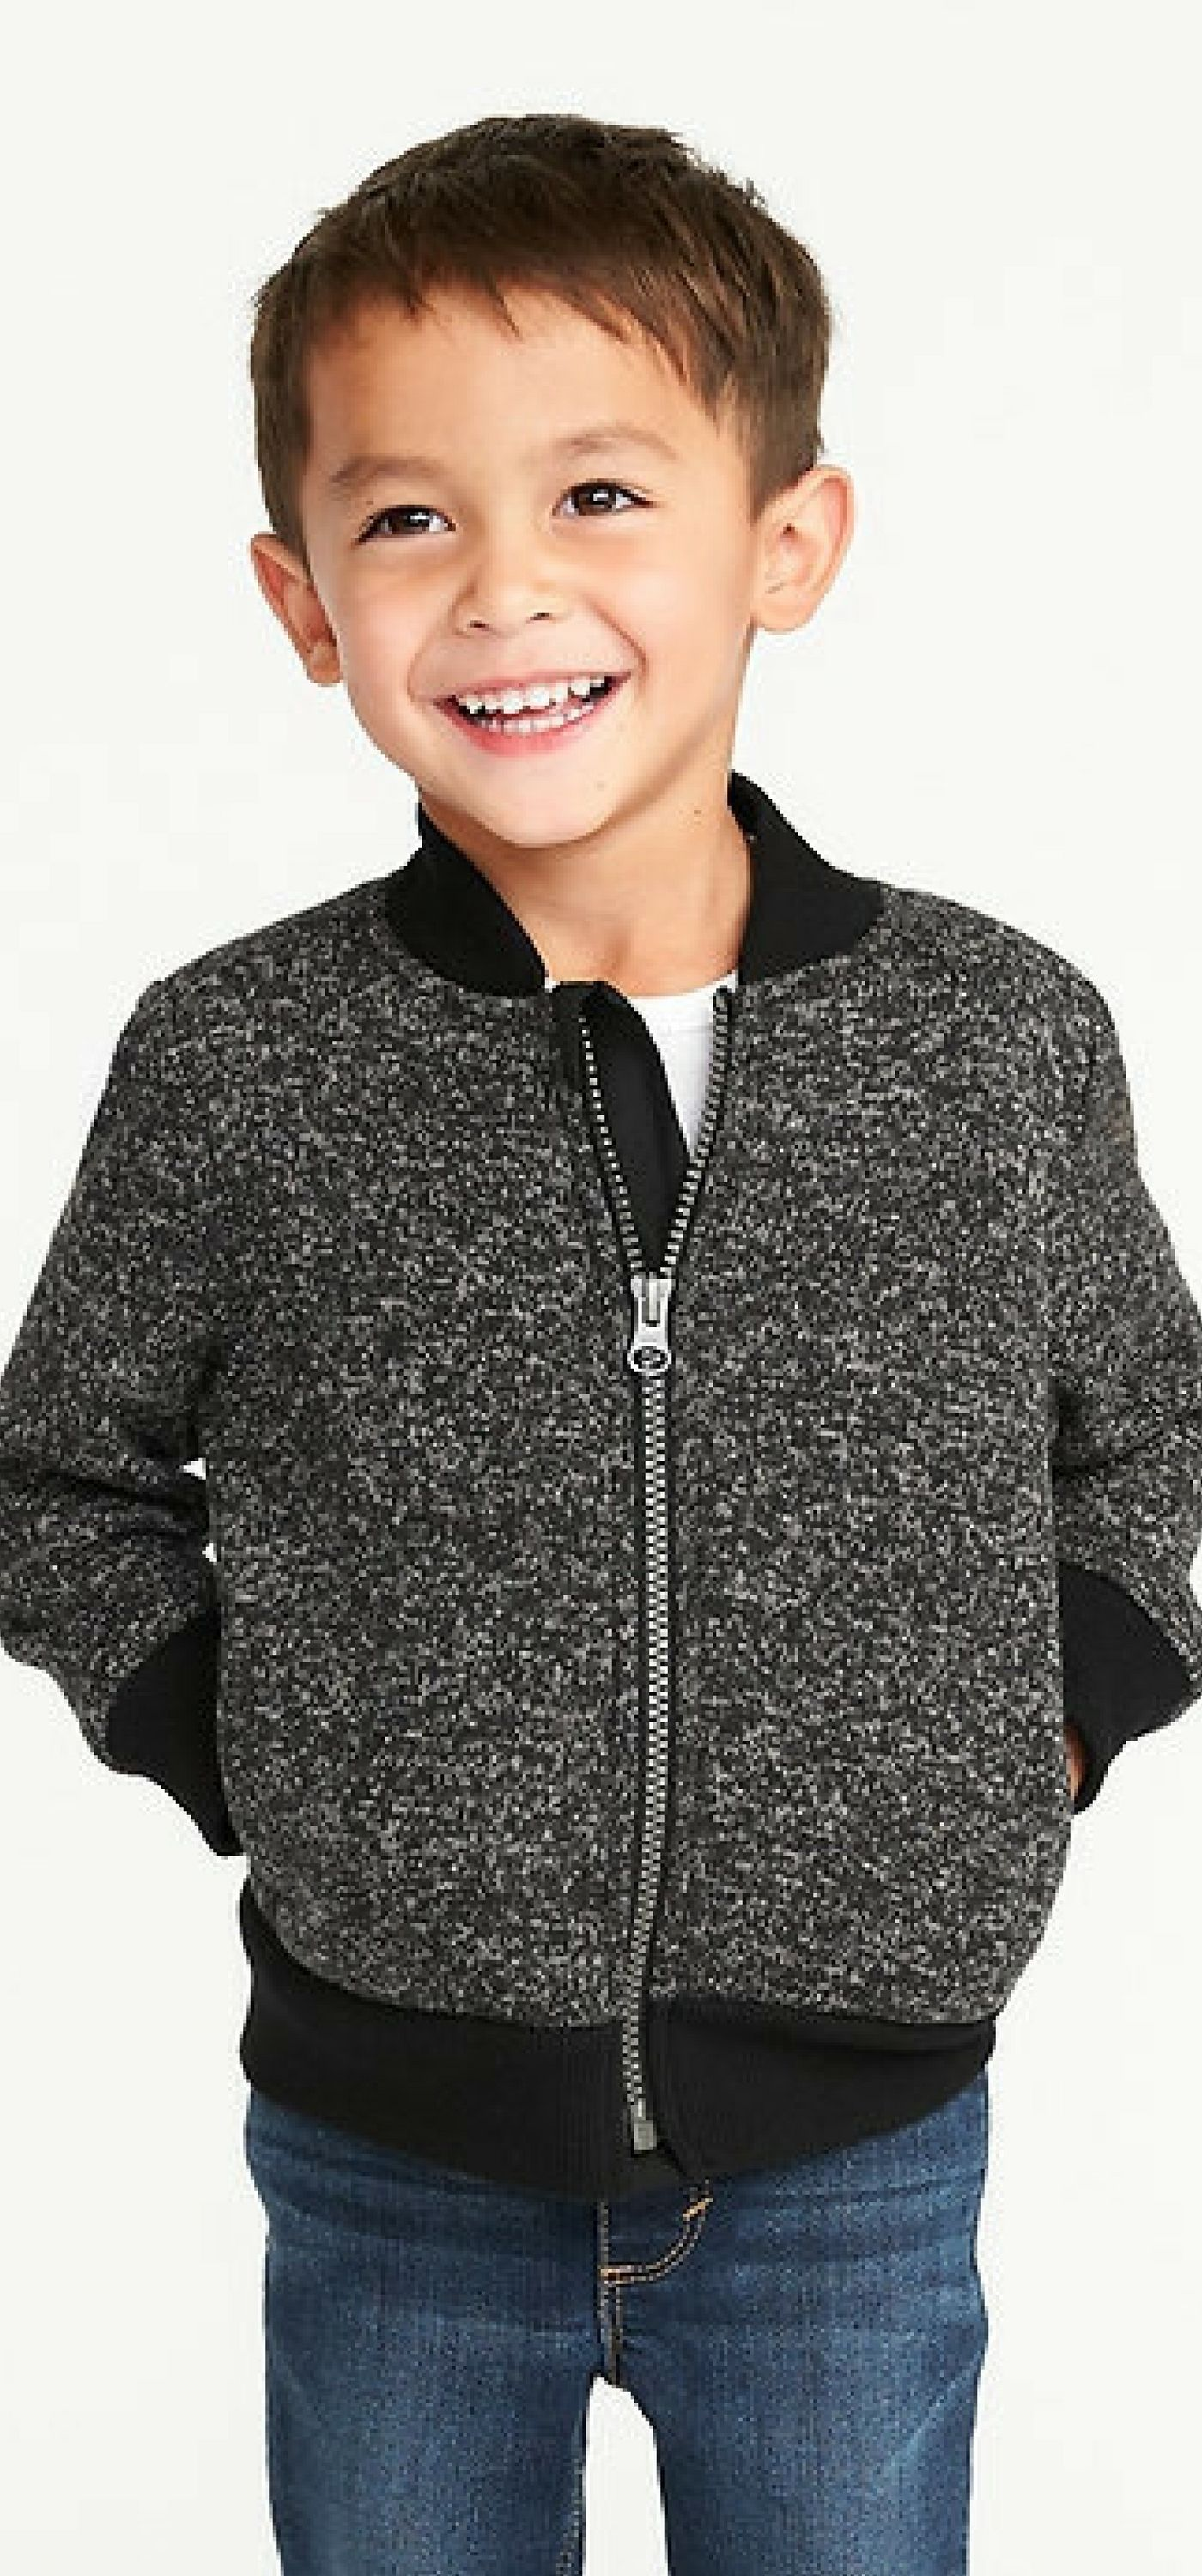 This little bomber jacket looks so warm and cute!!! #shopping #ad #love #boy #kids